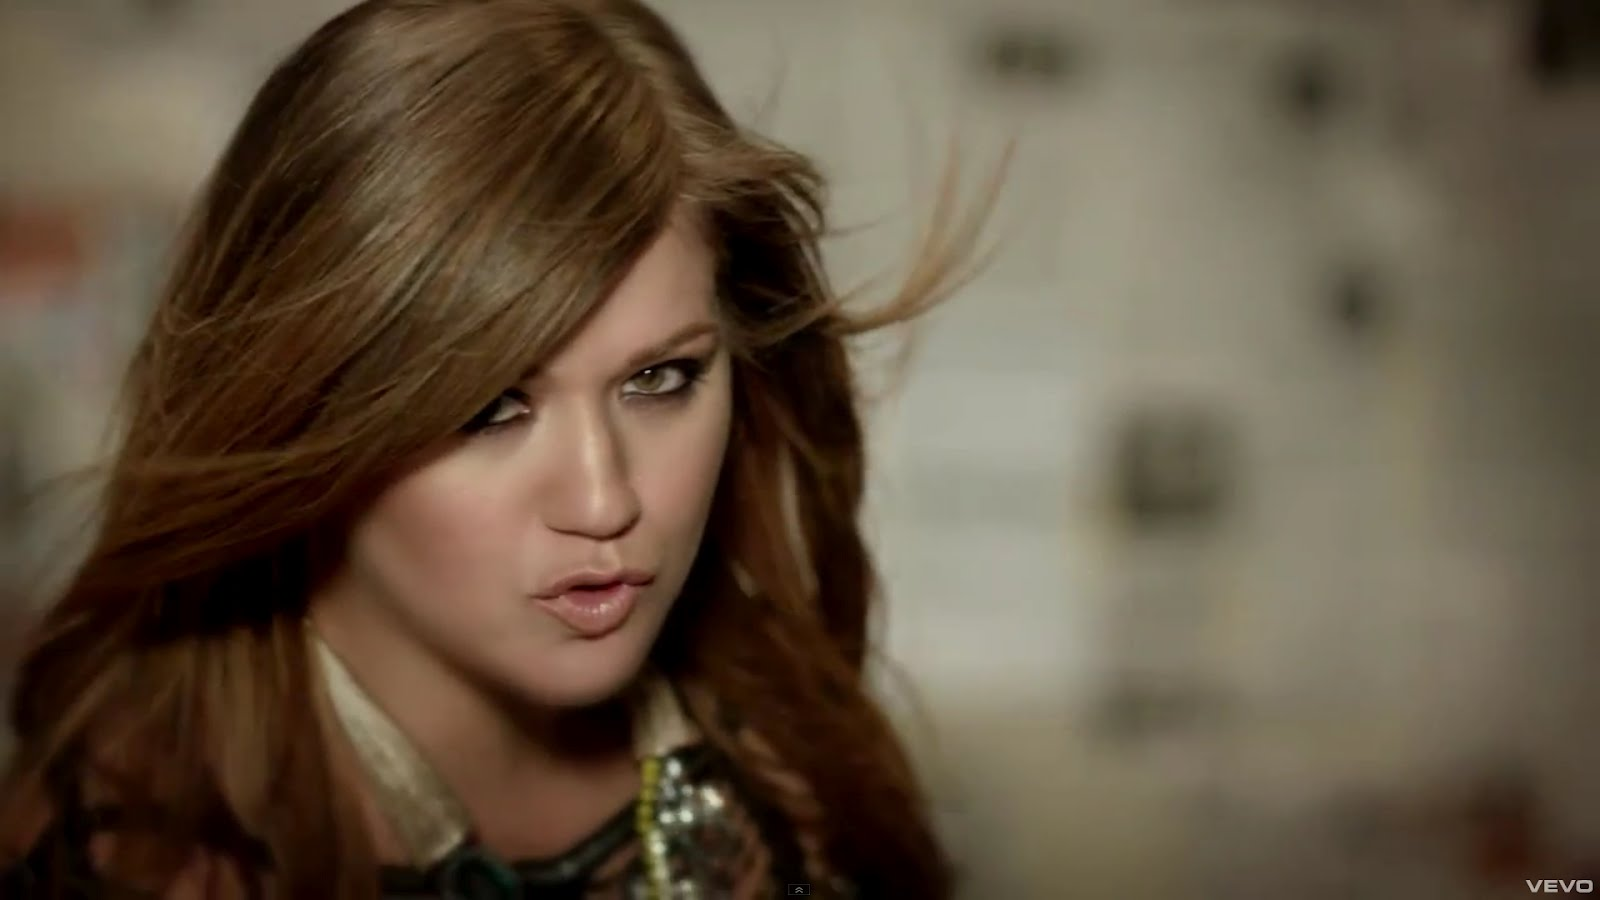 http://2.bp.blogspot.com/-w6NwjwUjT18/T4W2pk4A9_I/AAAAAAAABAc/_QpEslDjpyg/s1600/kelly-Clarkson-Mr-Know-It-All.jpg